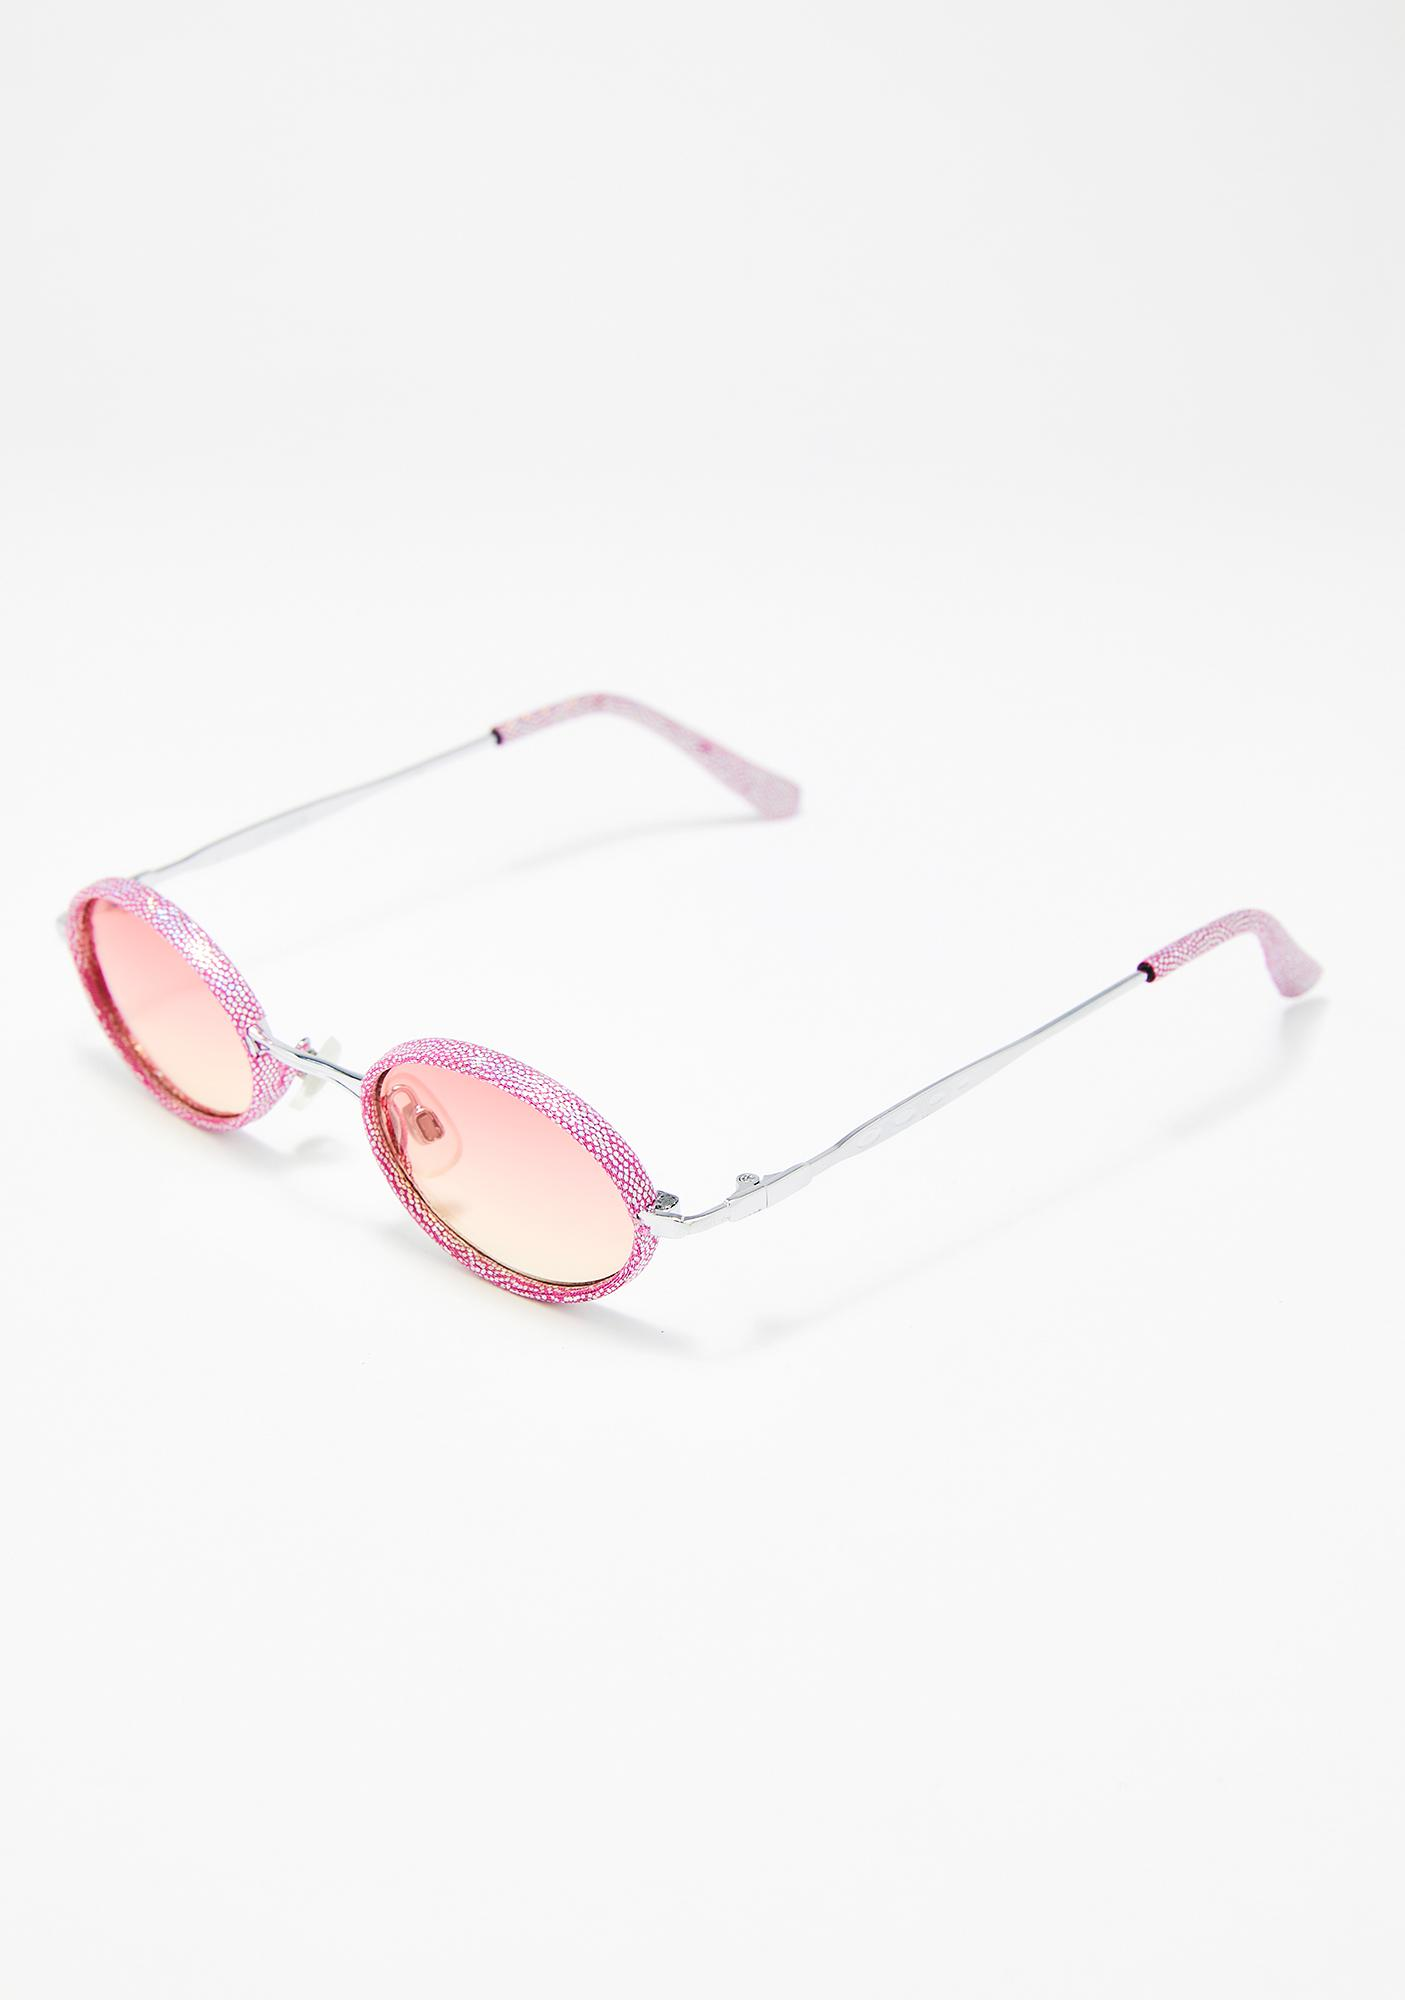 Replay Vintage Sunglasses Baby Lure Them In Glitter Sunglasses